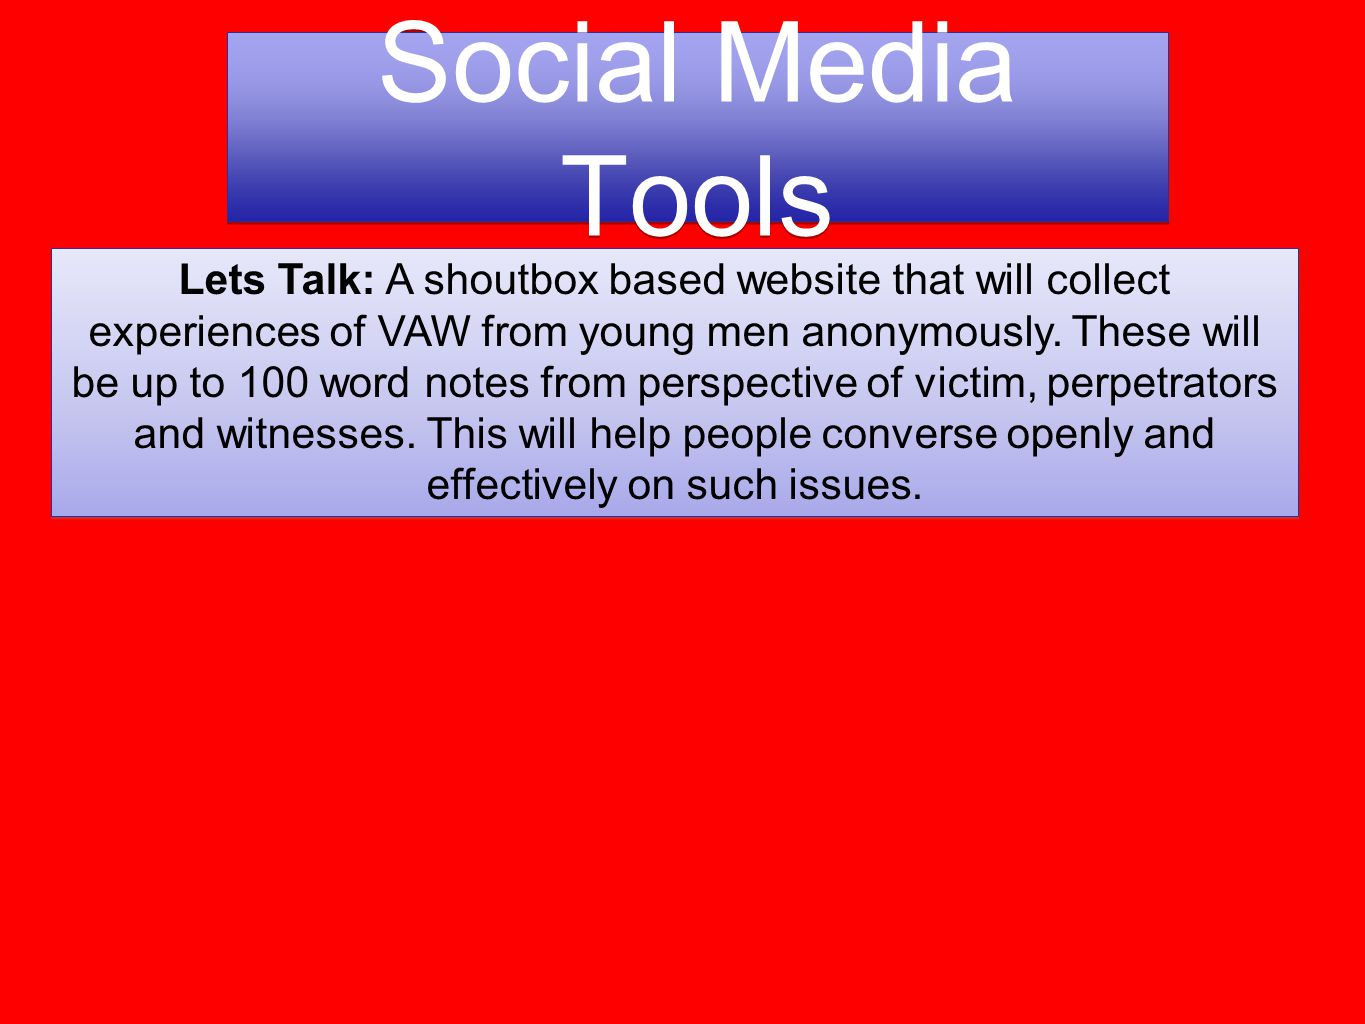 Social Media Tools Lets Talk: A shoutbox based website that will collect experiences of VAW from young men anonymously.